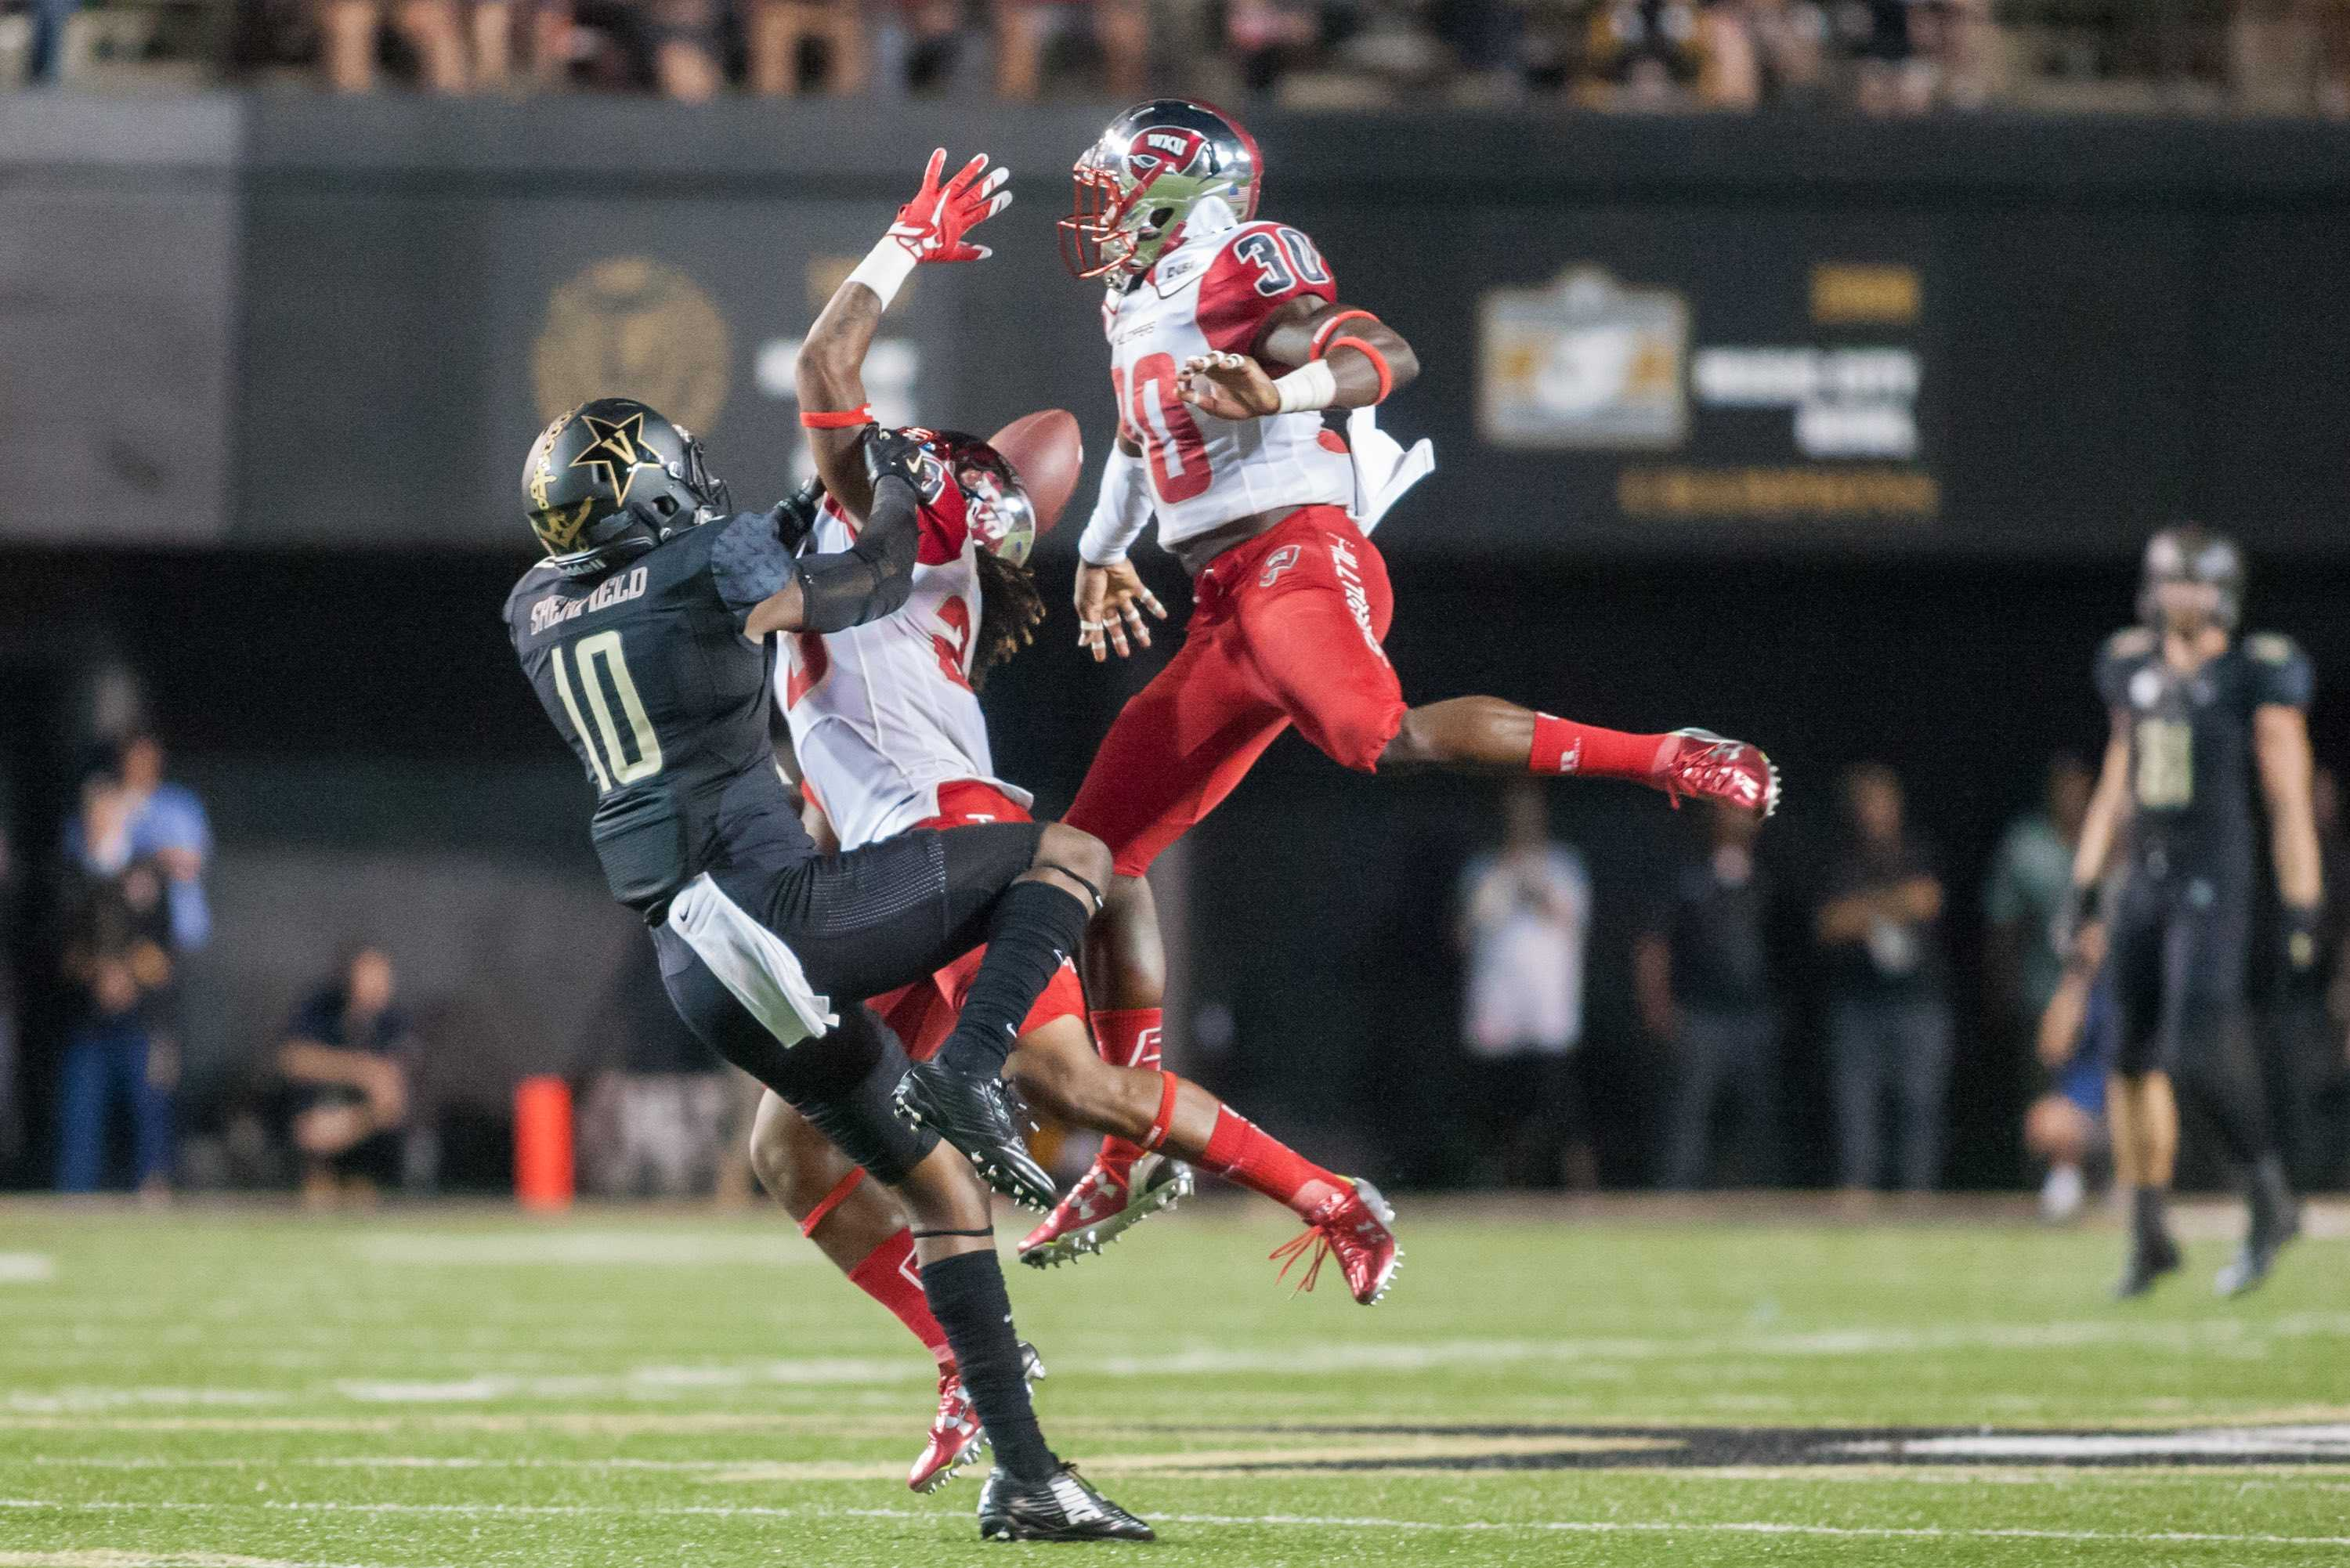 Trent Sherfield (10) is interfered with during Vanderbilt's 14-12 loss against the Western Kentucky Hilltoppers September 3, 2015 at Vanderbilt Stadium Nashville, TN. Photo by Ziyi Liu.